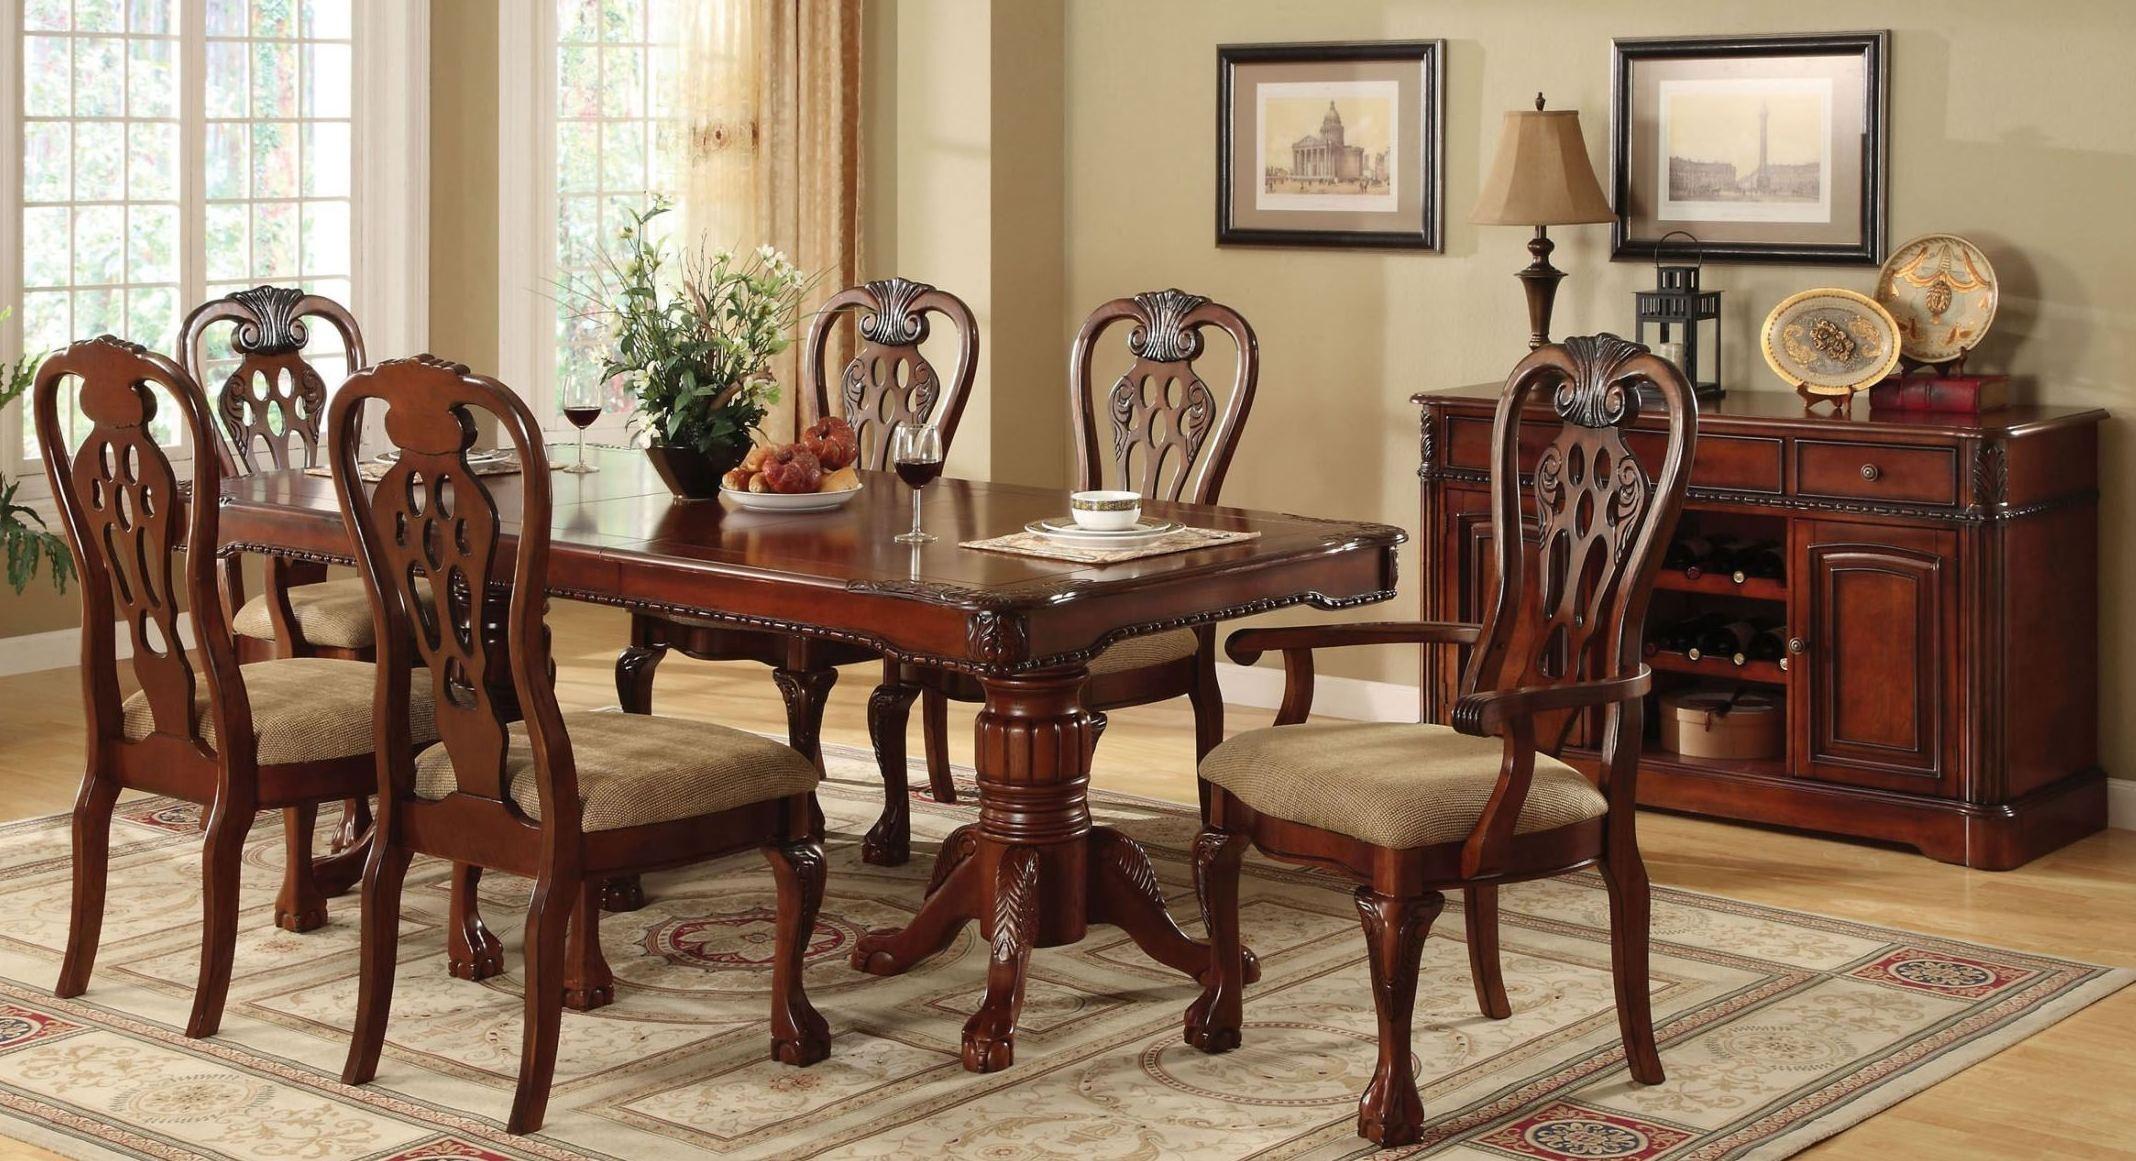 George town rectangular double pedestal formal dining room for Formal dining room furniture